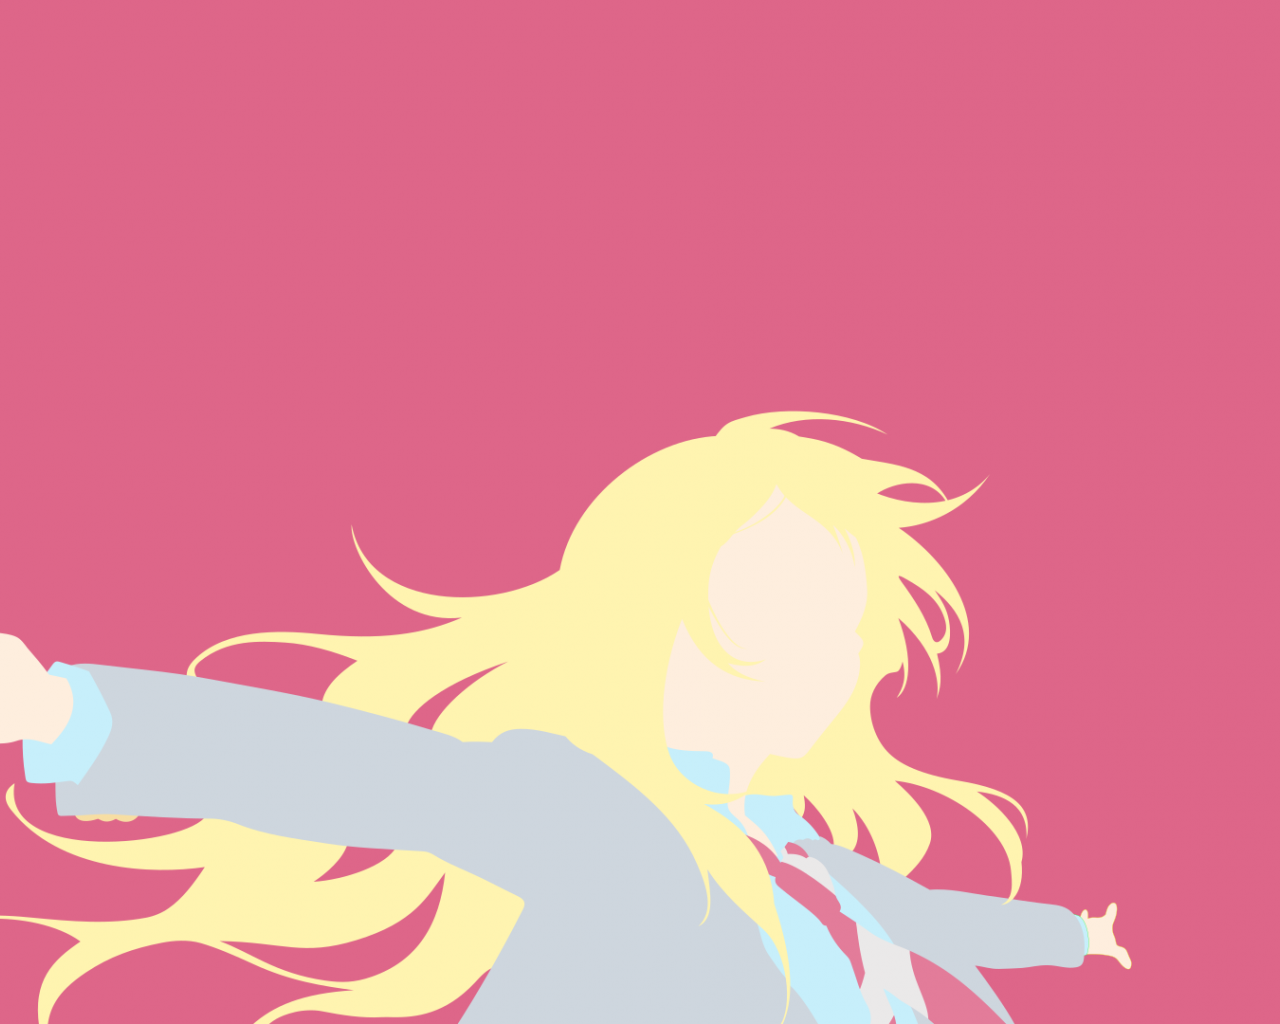 Free Download Minimalist Wallpaper Kaori Your Lie In April By